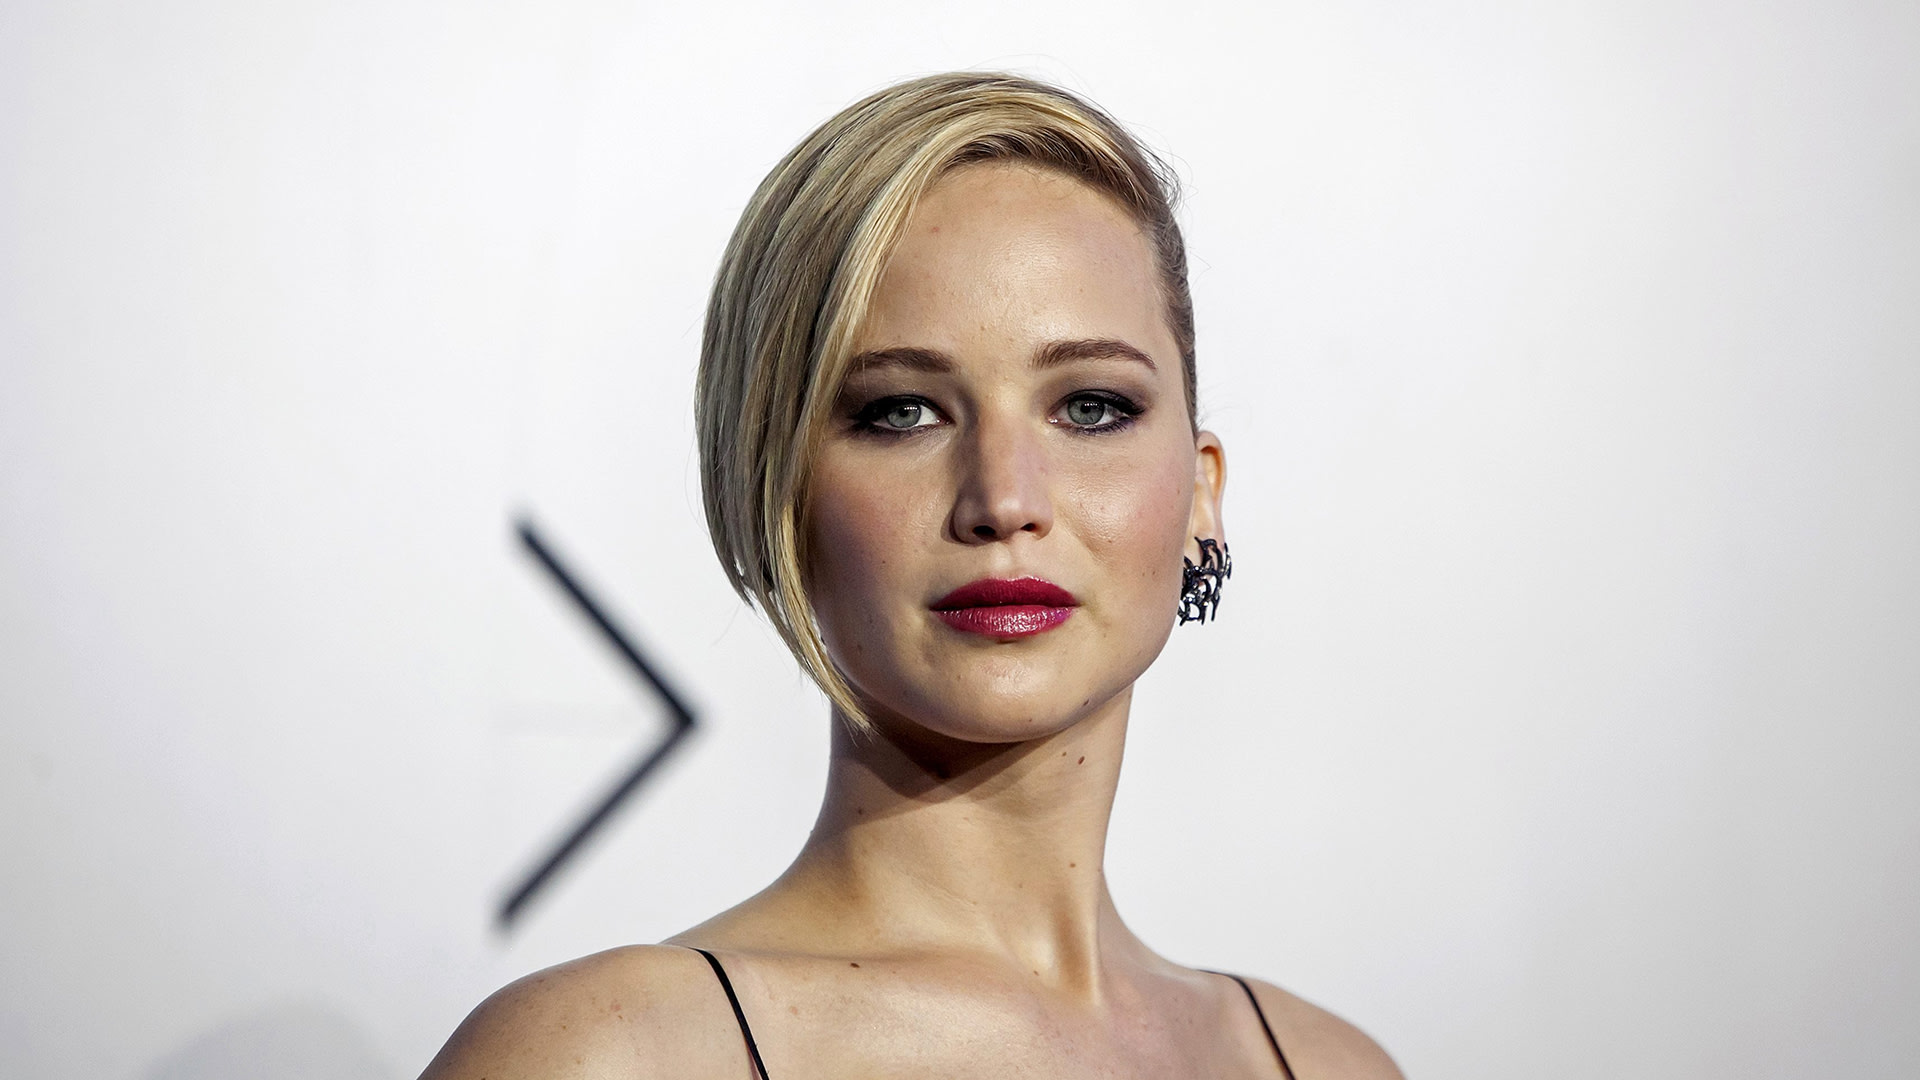 """Image: Actress Jennifer Lawrence attends the """"X-Men: Days of Future Past"""" world movie premiere in New York"""